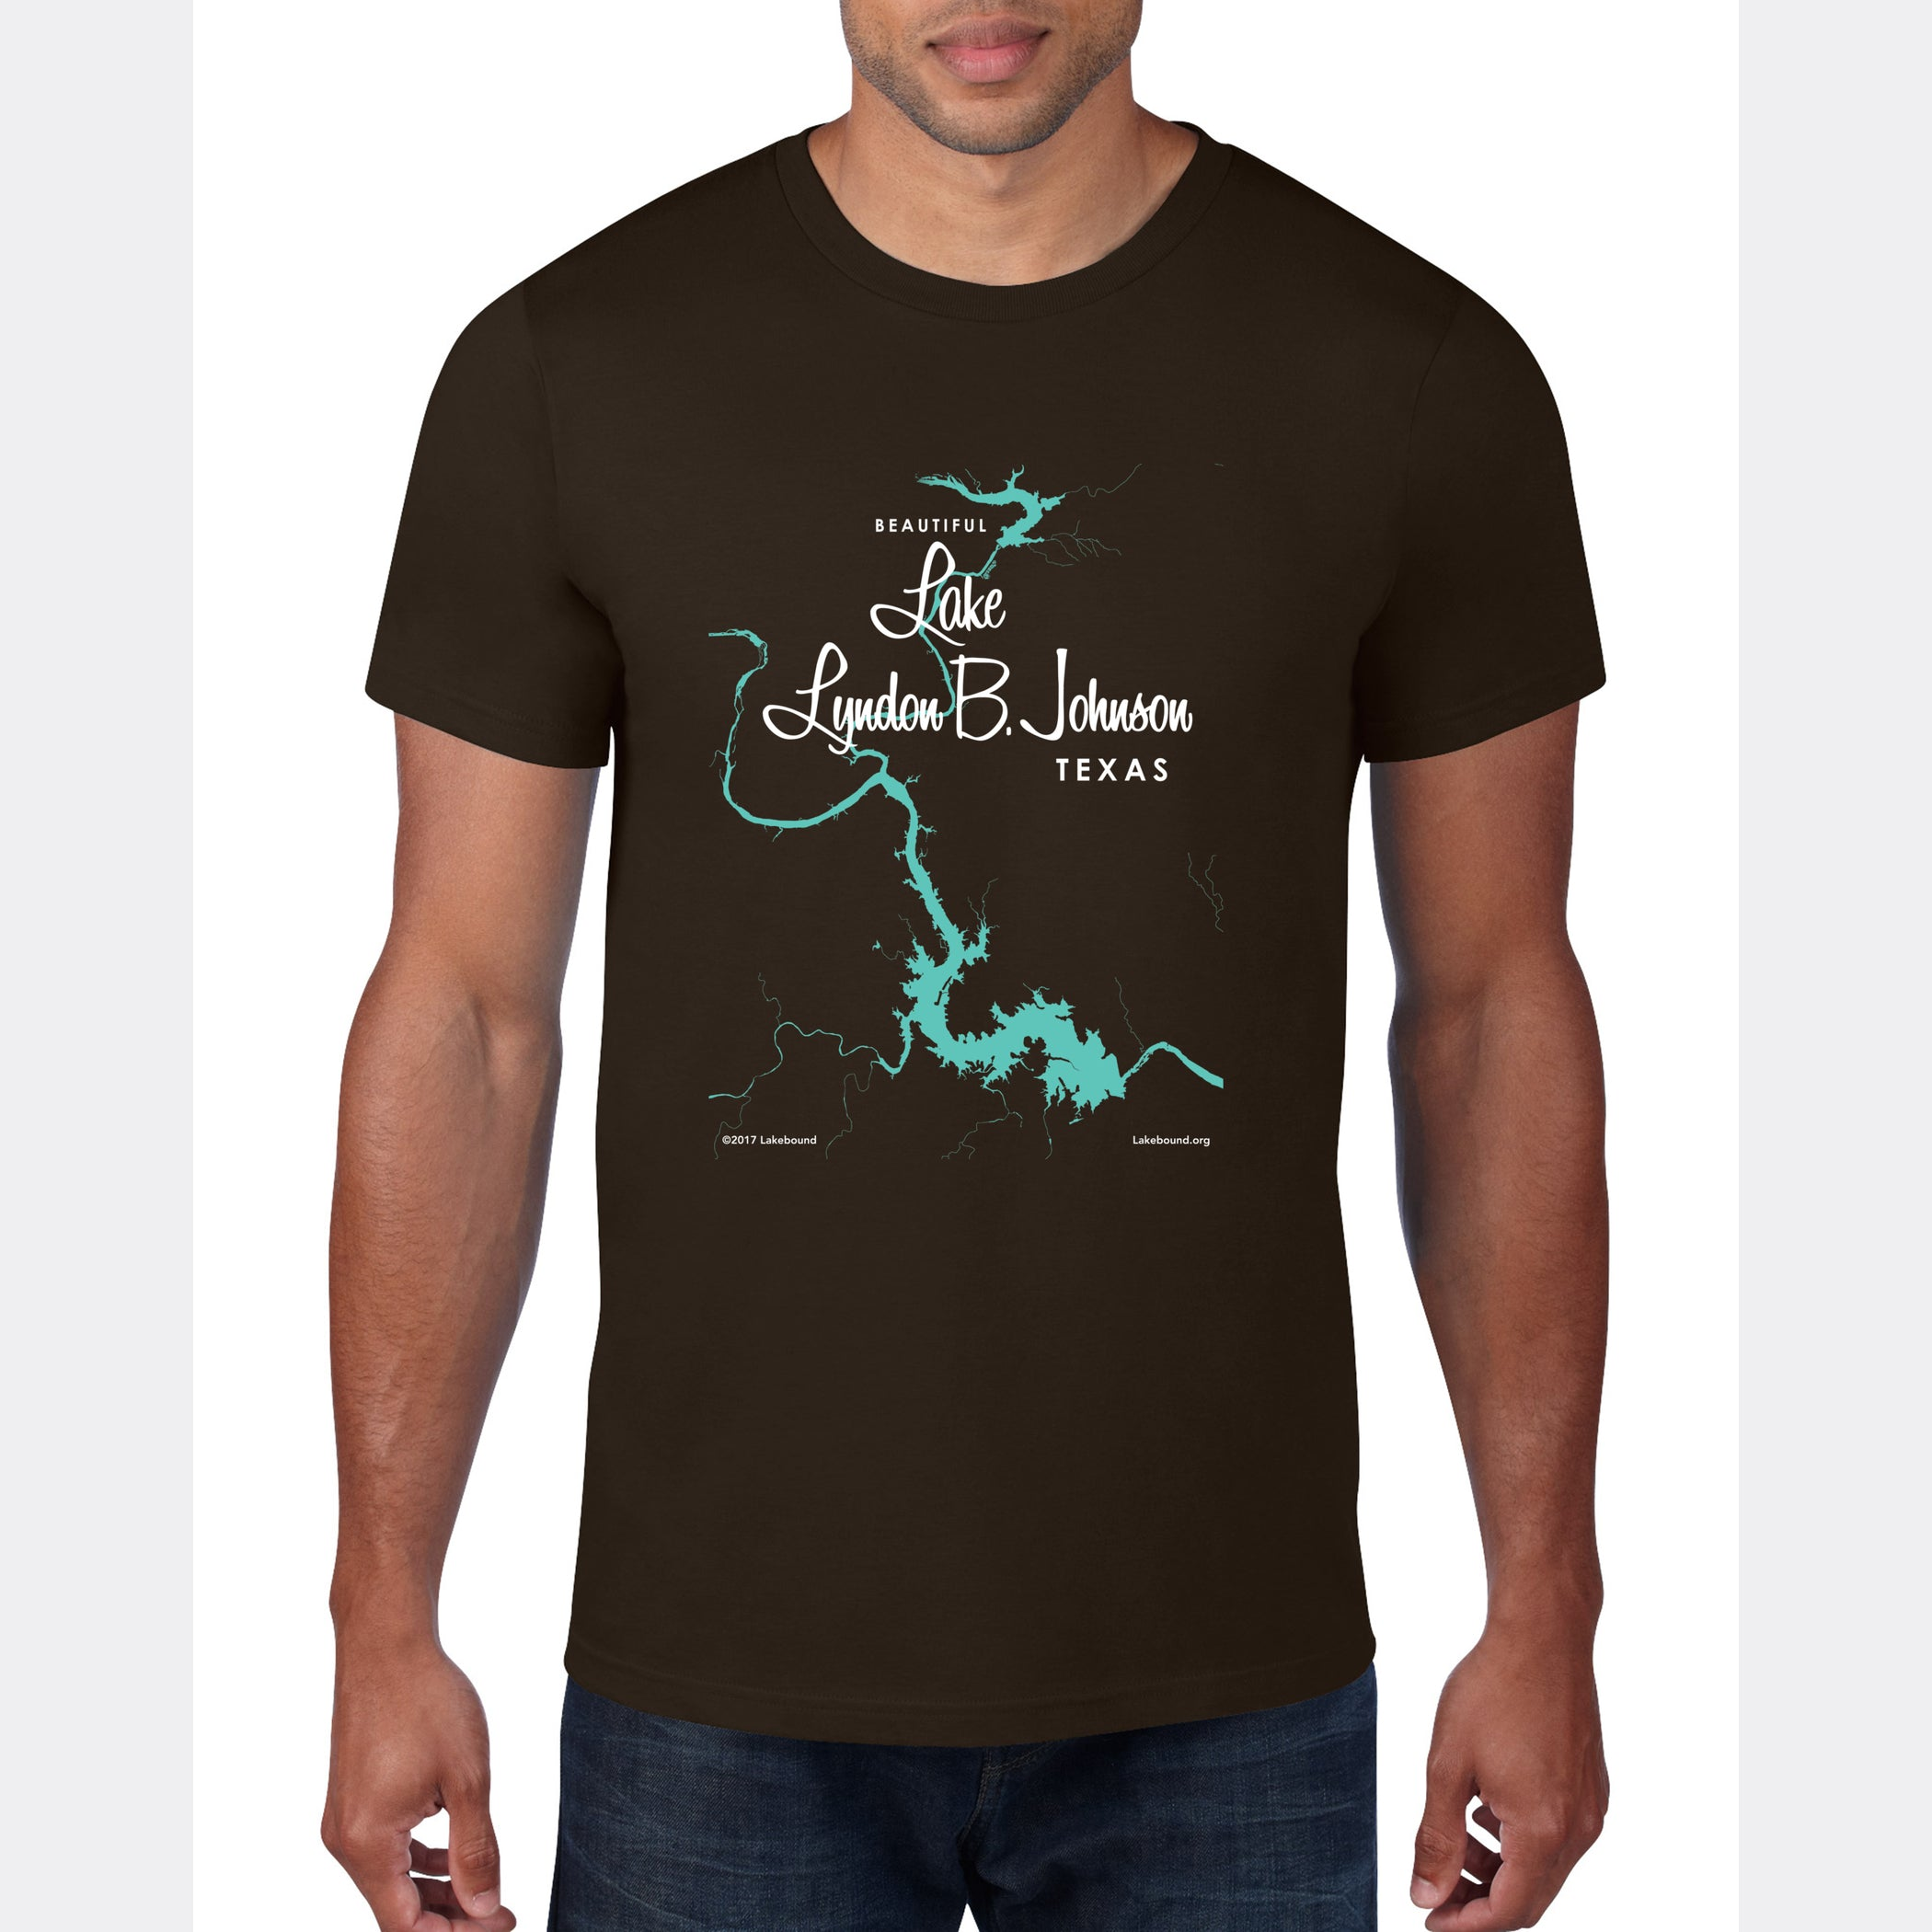 Lake LBJ Texas, T-Shirt